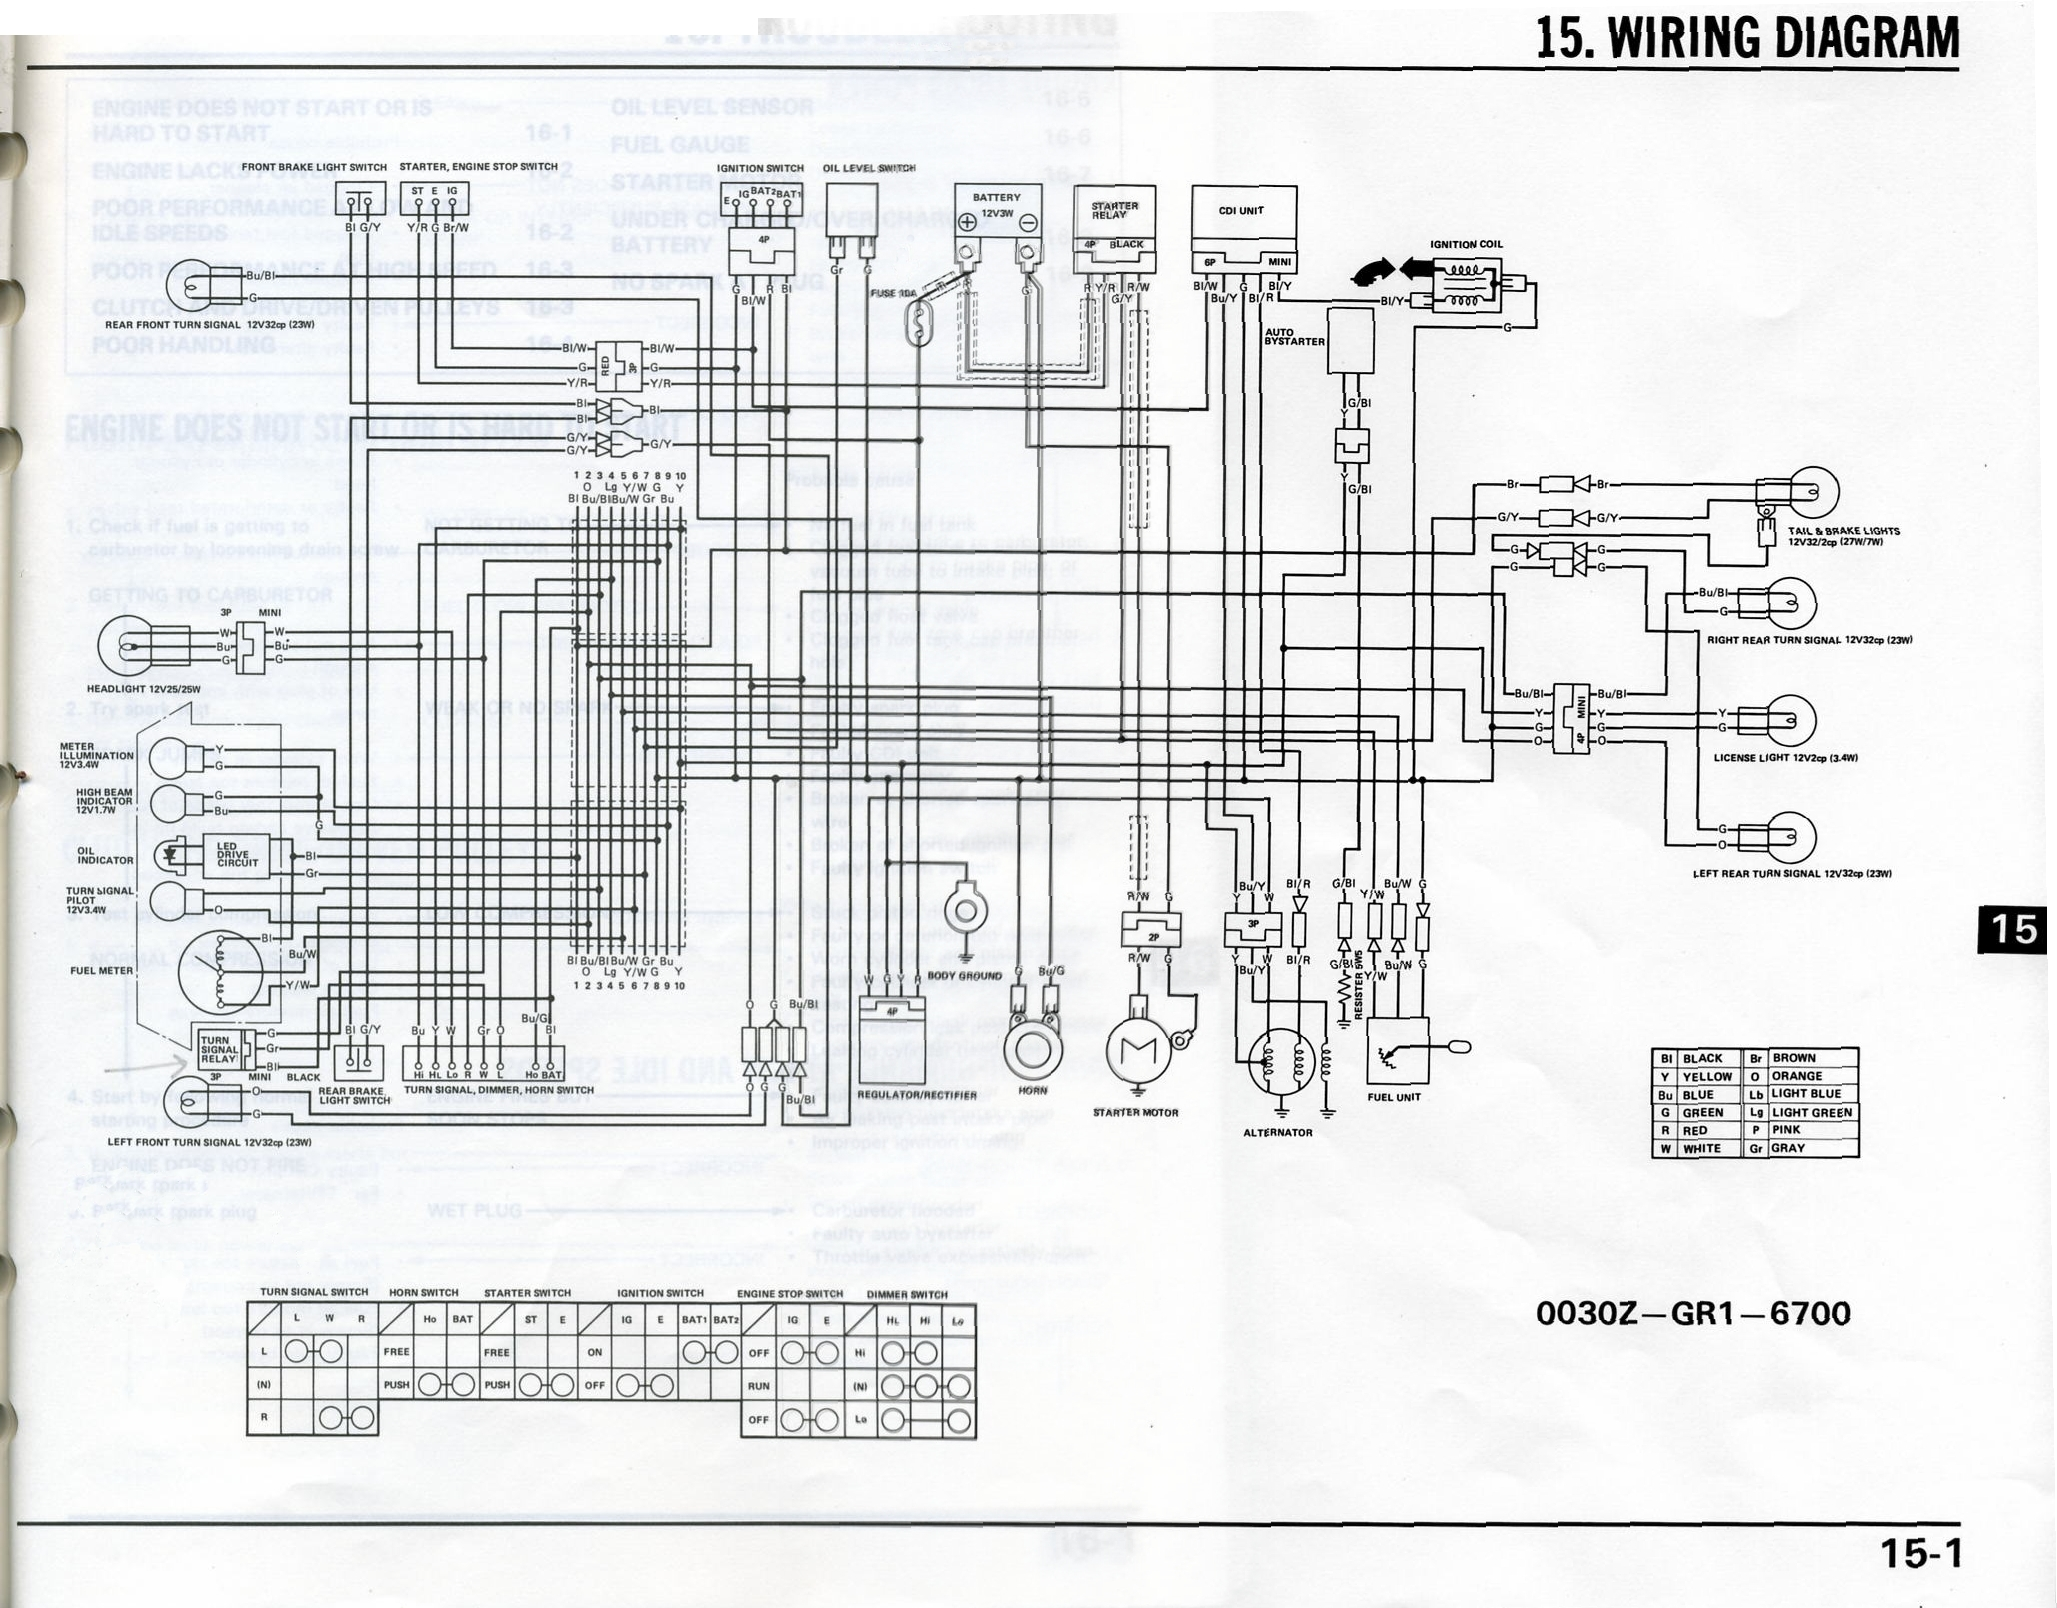 1985 Honda Spree Wiring Diagram on 1986 Honda Trx 250 Wiring Diagram